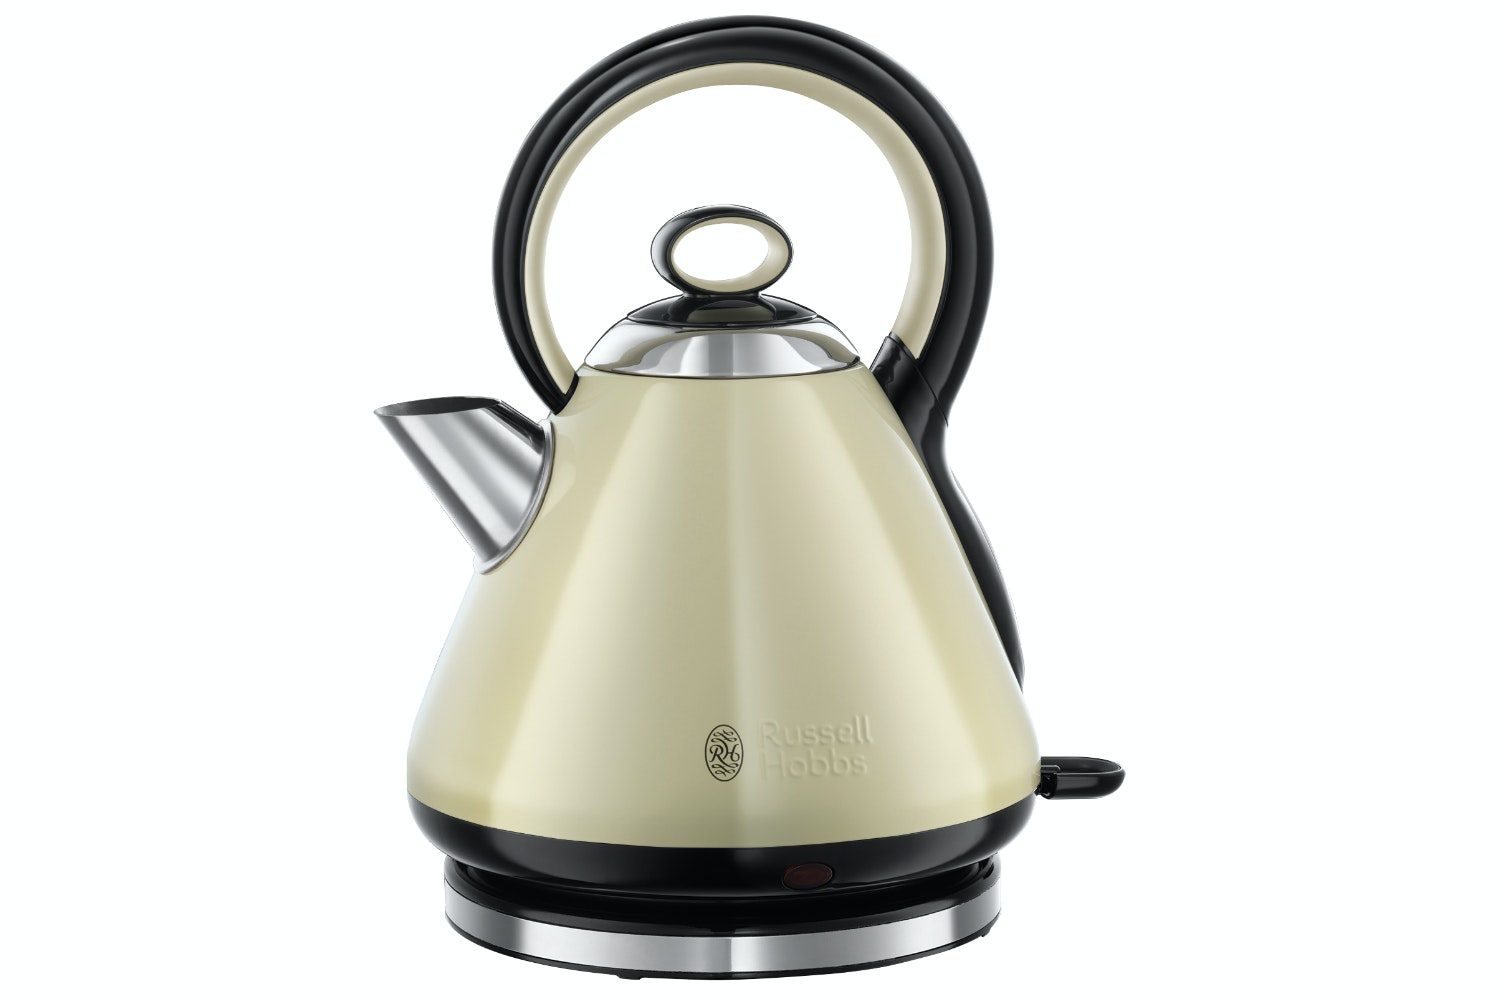 Russell Hobbs Legacy Collection Kettle | 21882